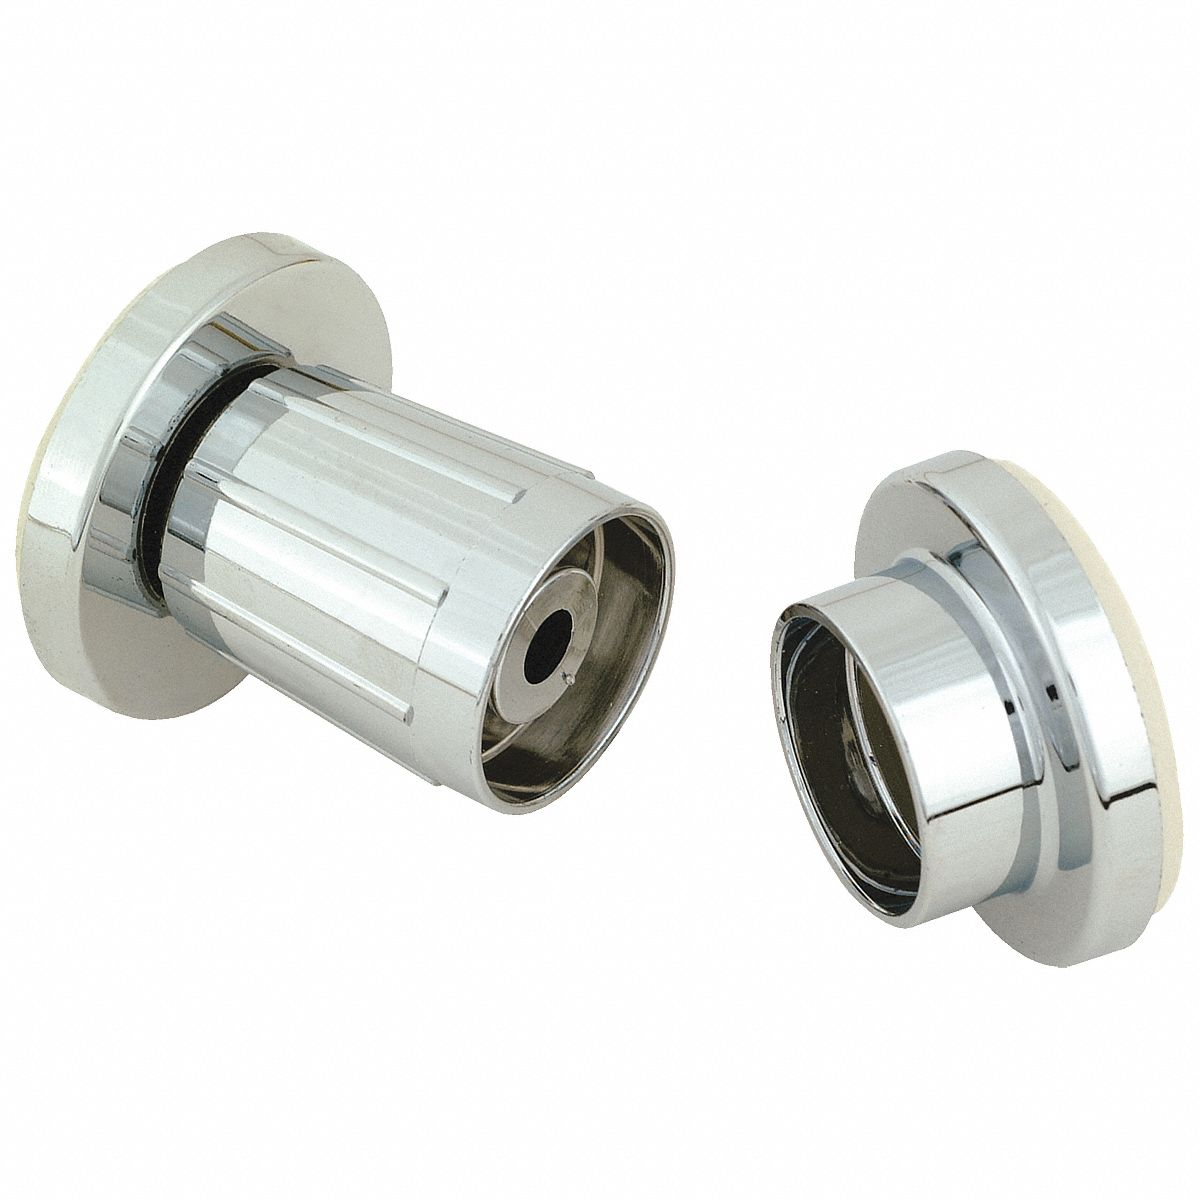 01-9659 TAYMOR Zinc Alloy Rod Flanges,Bathroom,Polished Chrome,PR